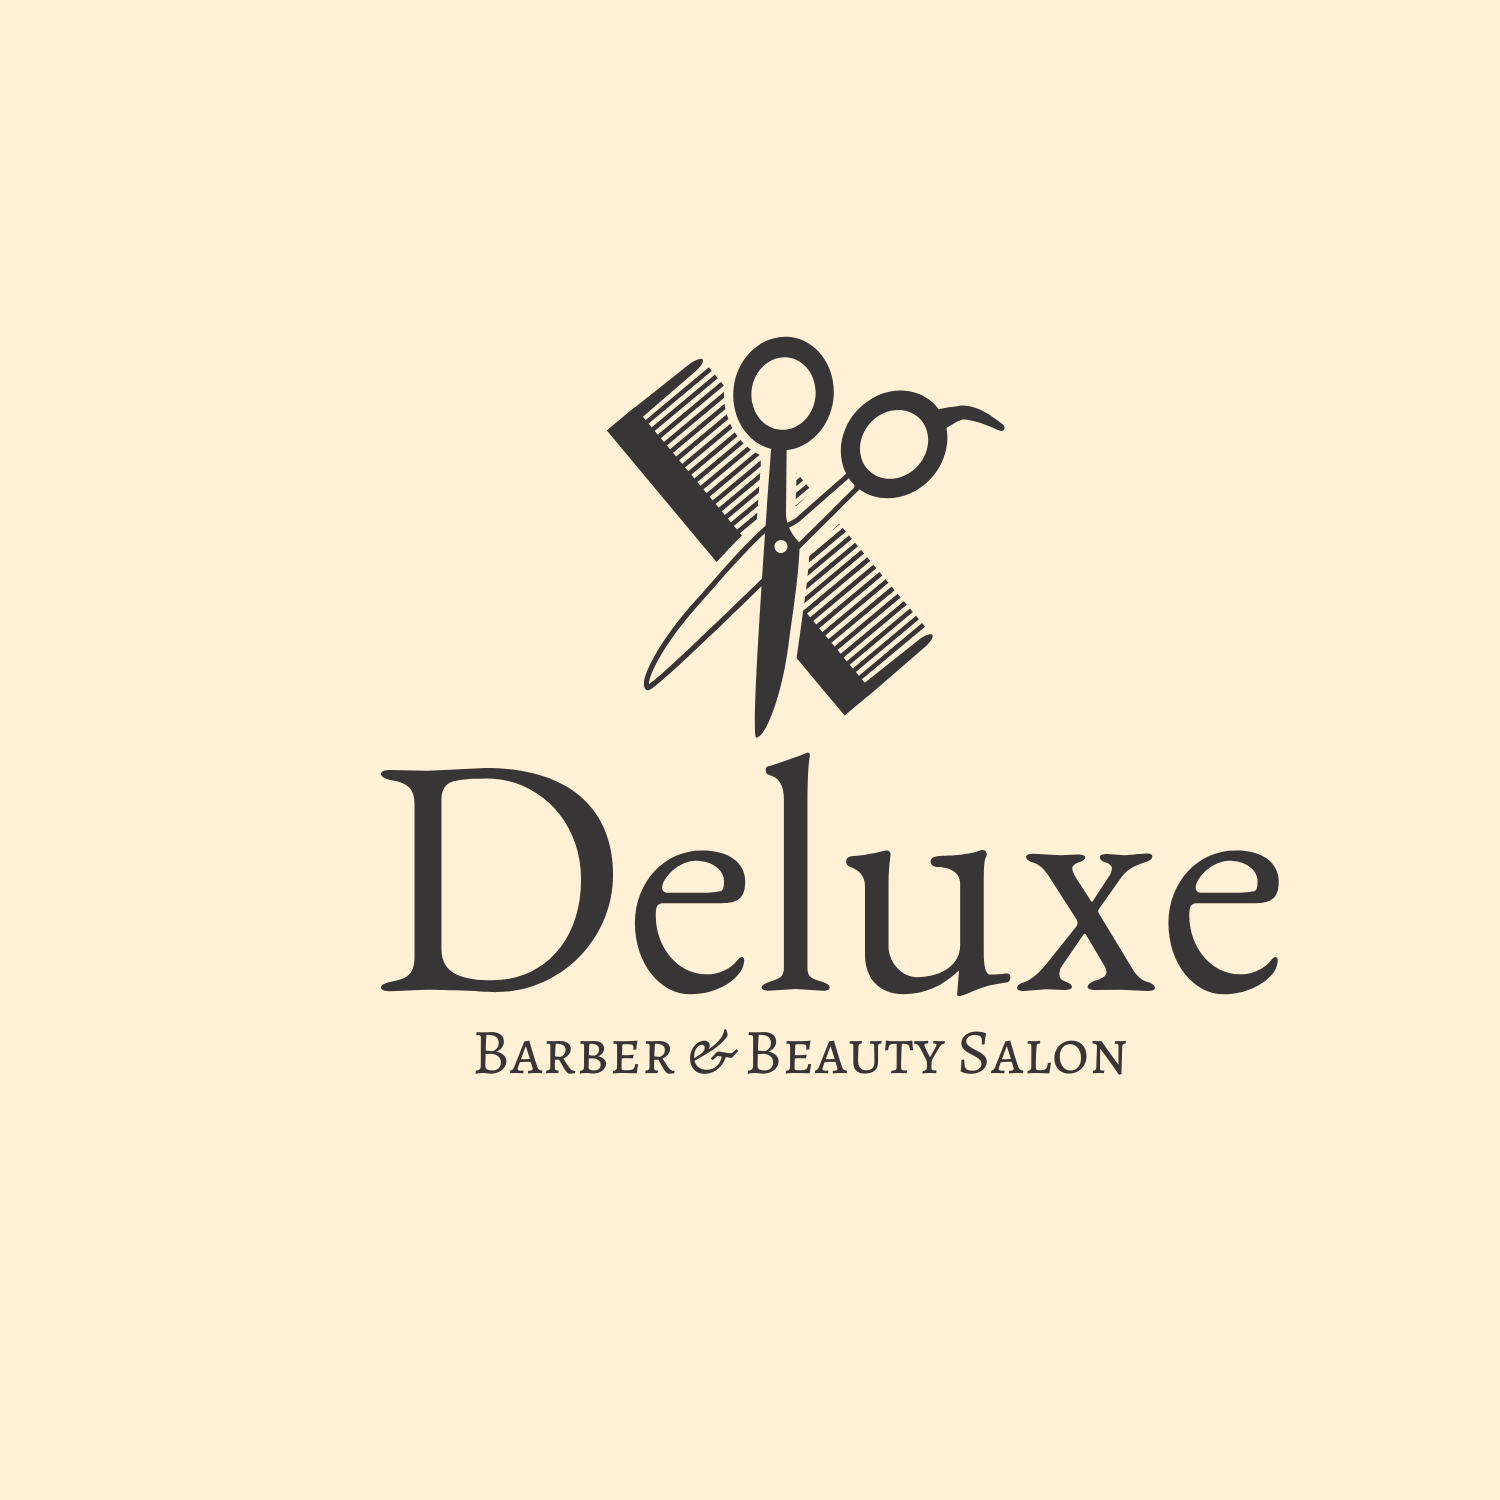 Deluxe Barber and Beauty Salon Tampa Florida for weaves for black women and hair cut for african american men